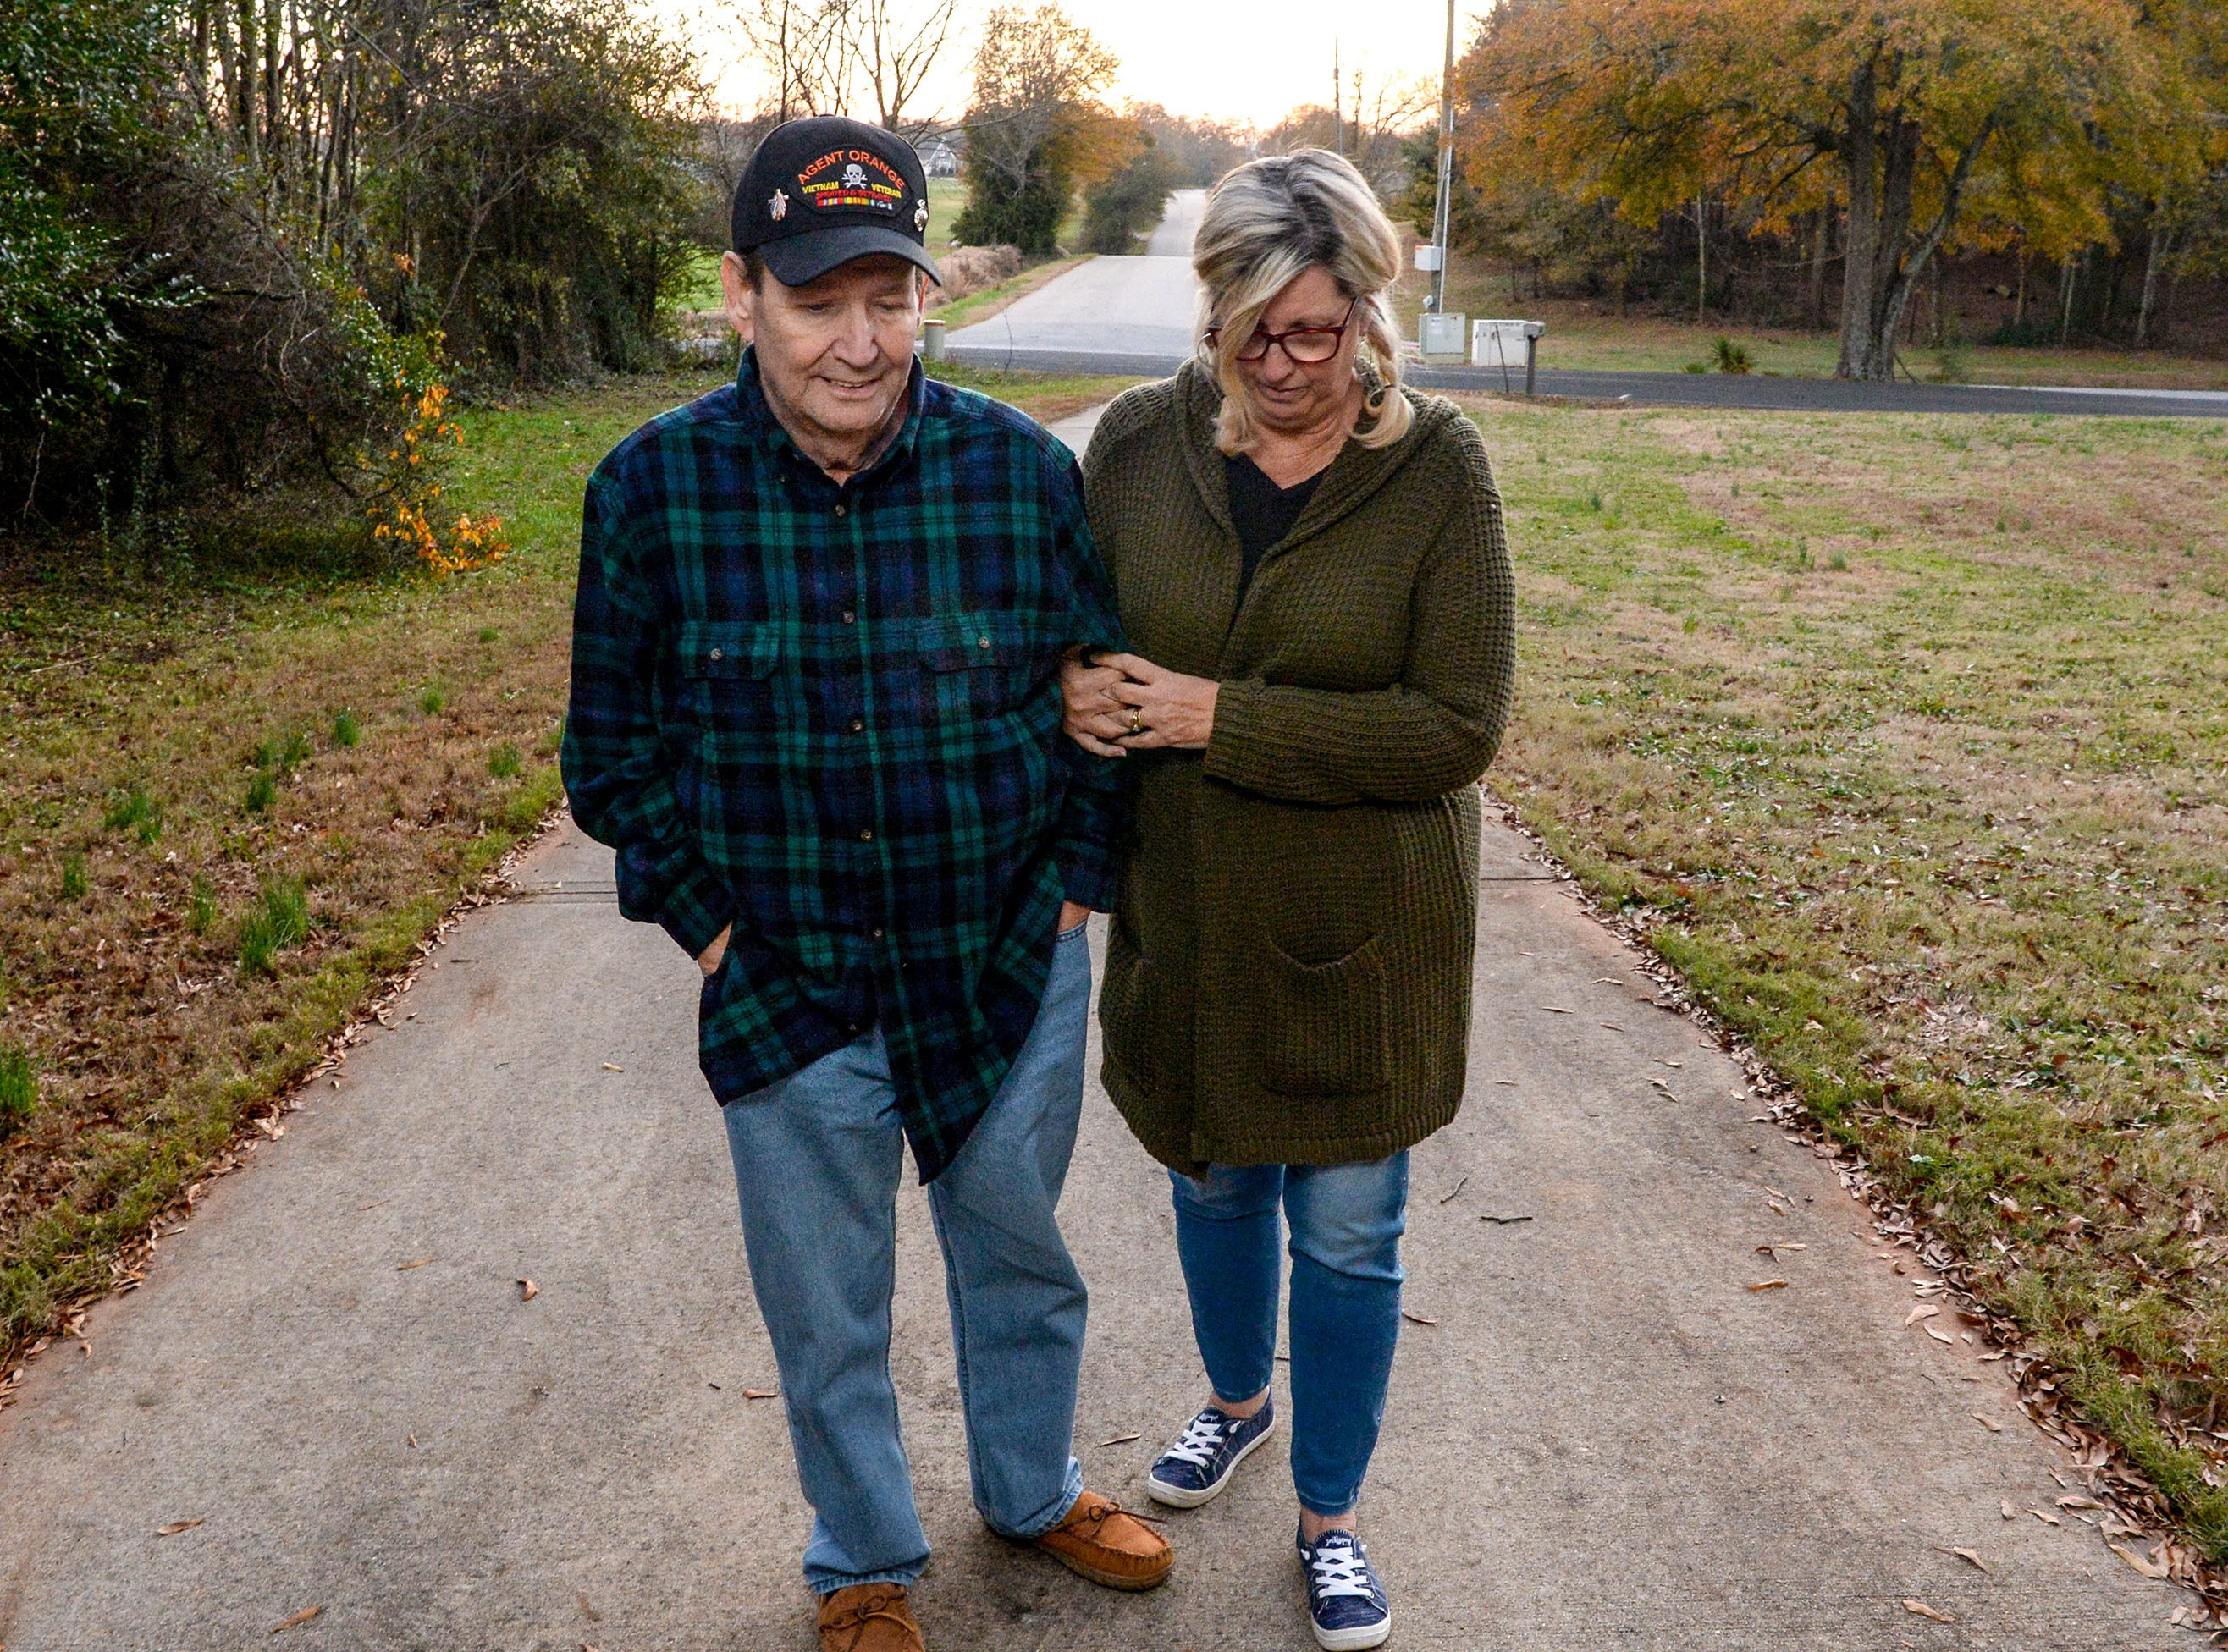 Vietnam Veteran Billy Konrad, left, and Bonnie Konrad walk up their driveway at their home West of Anderson in December. Konrad served in the U.S. Marine Corps from 1966 to 1968 and says he deals with the hardships of health after his time serving.